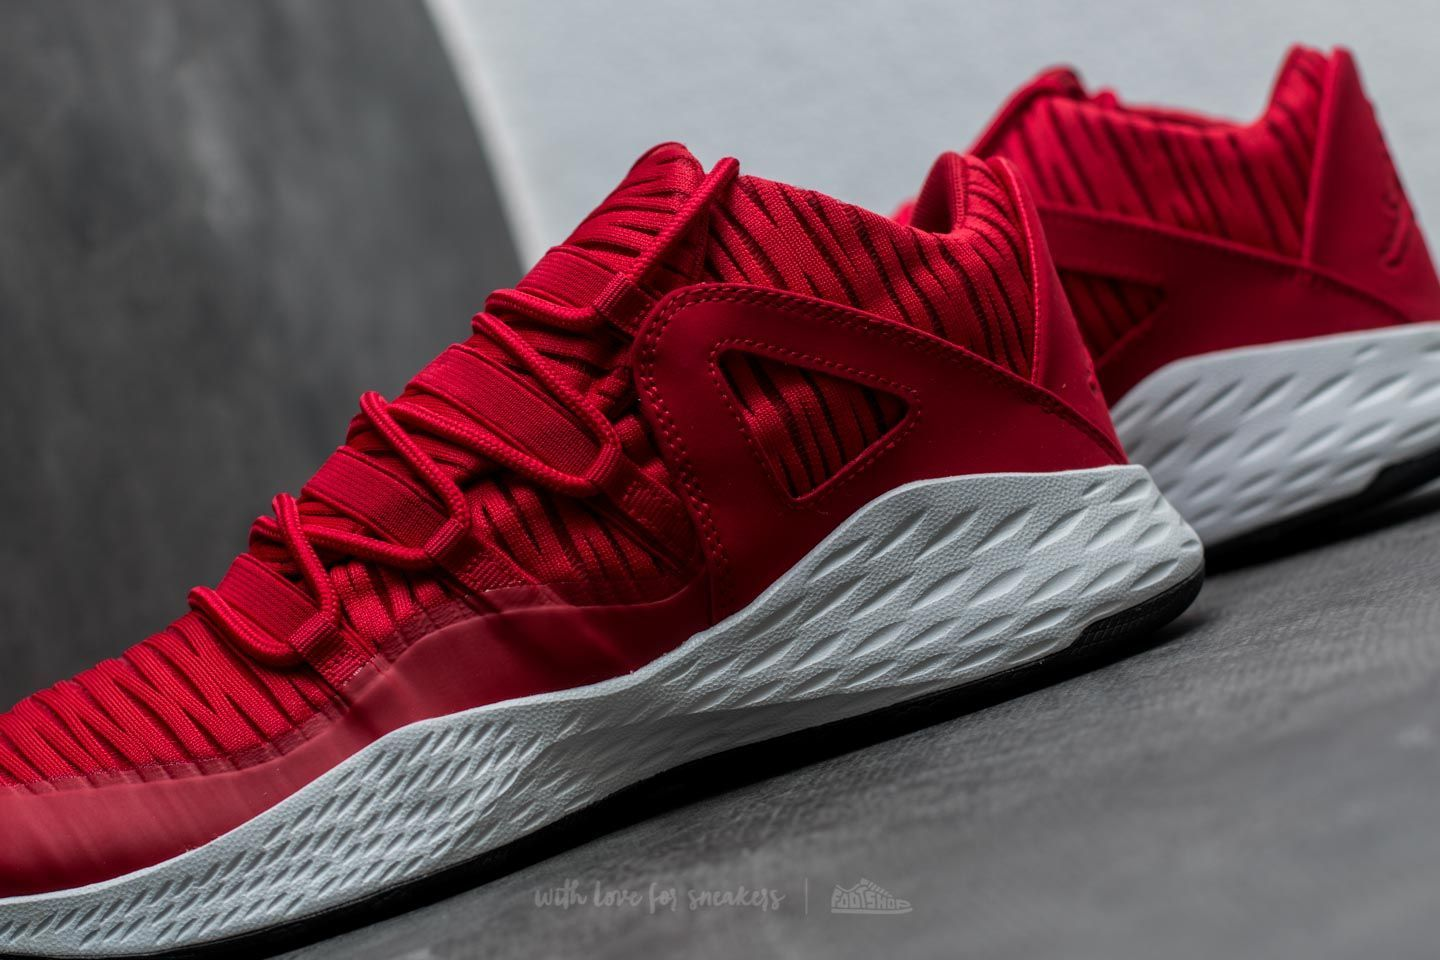 5f2e39791216 Jordan Formula 23 Low Gym Red  Gym Red-Pure Platinum at a great price